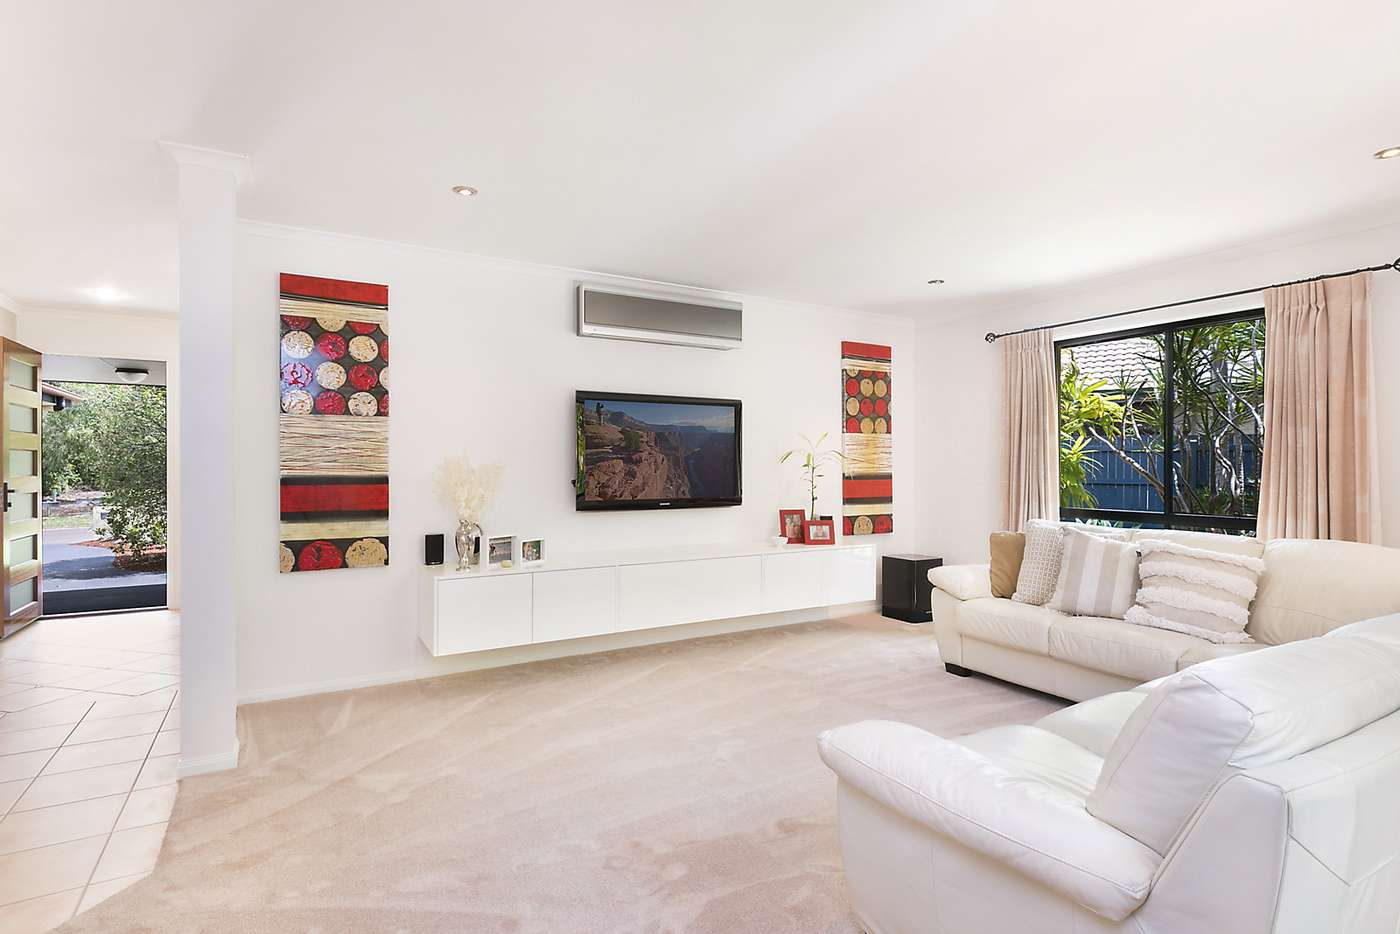 Fifth view of Homely house listing, 28 Rainsford Place, Buderim QLD 4556